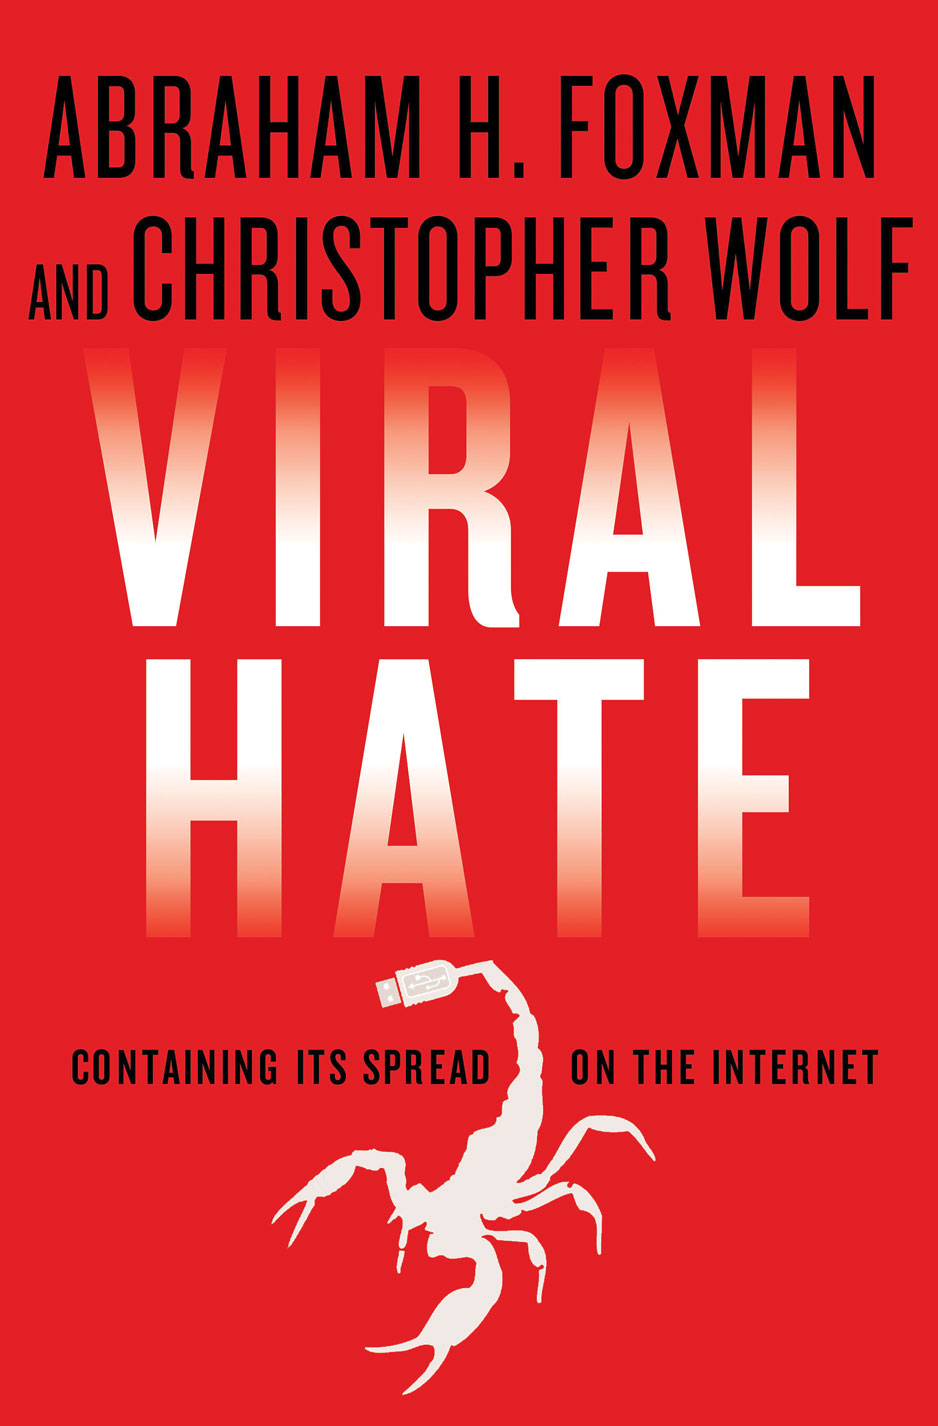 "Click photo to download. Caption: The cover of  VIRAL HATE: Containing Its Spread on the Internet,  a new book by ADL National Director Abraham Foxman covering the challenging intersection of online hate and free speech. Credit: Palgrave Macmillan.                 0     0     1     8     42     JNS     1     1     49     14.0                            Normal     0                     false     false     false         EN-US     JA     X-NONE                                                                                                                                                                                                                                                                                                                                                                                                                                                                                                                                                                                                                                                                                                                    /* Style Definitions */ table.MsoNormalTable 	{mso-style-name:""Table Normal""; 	mso-tstyle-rowband-size:0; 	mso-tstyle-colband-size:0; 	mso-style-noshow:yes; 	mso-style-priority:99; 	mso-style-parent:""""; 	mso-padding-alt:0in 5.4pt 0in 5.4pt; 	mso-para-margin:0in; 	mso-para-margin-bottom:.0001pt; 	mso-pagination:widow-orphan; 	font-size:12.0pt; 	font-family:Cambria; 	mso-ascii-font-family:Cambria; 	mso-ascii-theme-font:minor-latin; 	mso-hansi-font-family:Cambria; 	mso-hansi-theme-font:minor-latin;}"